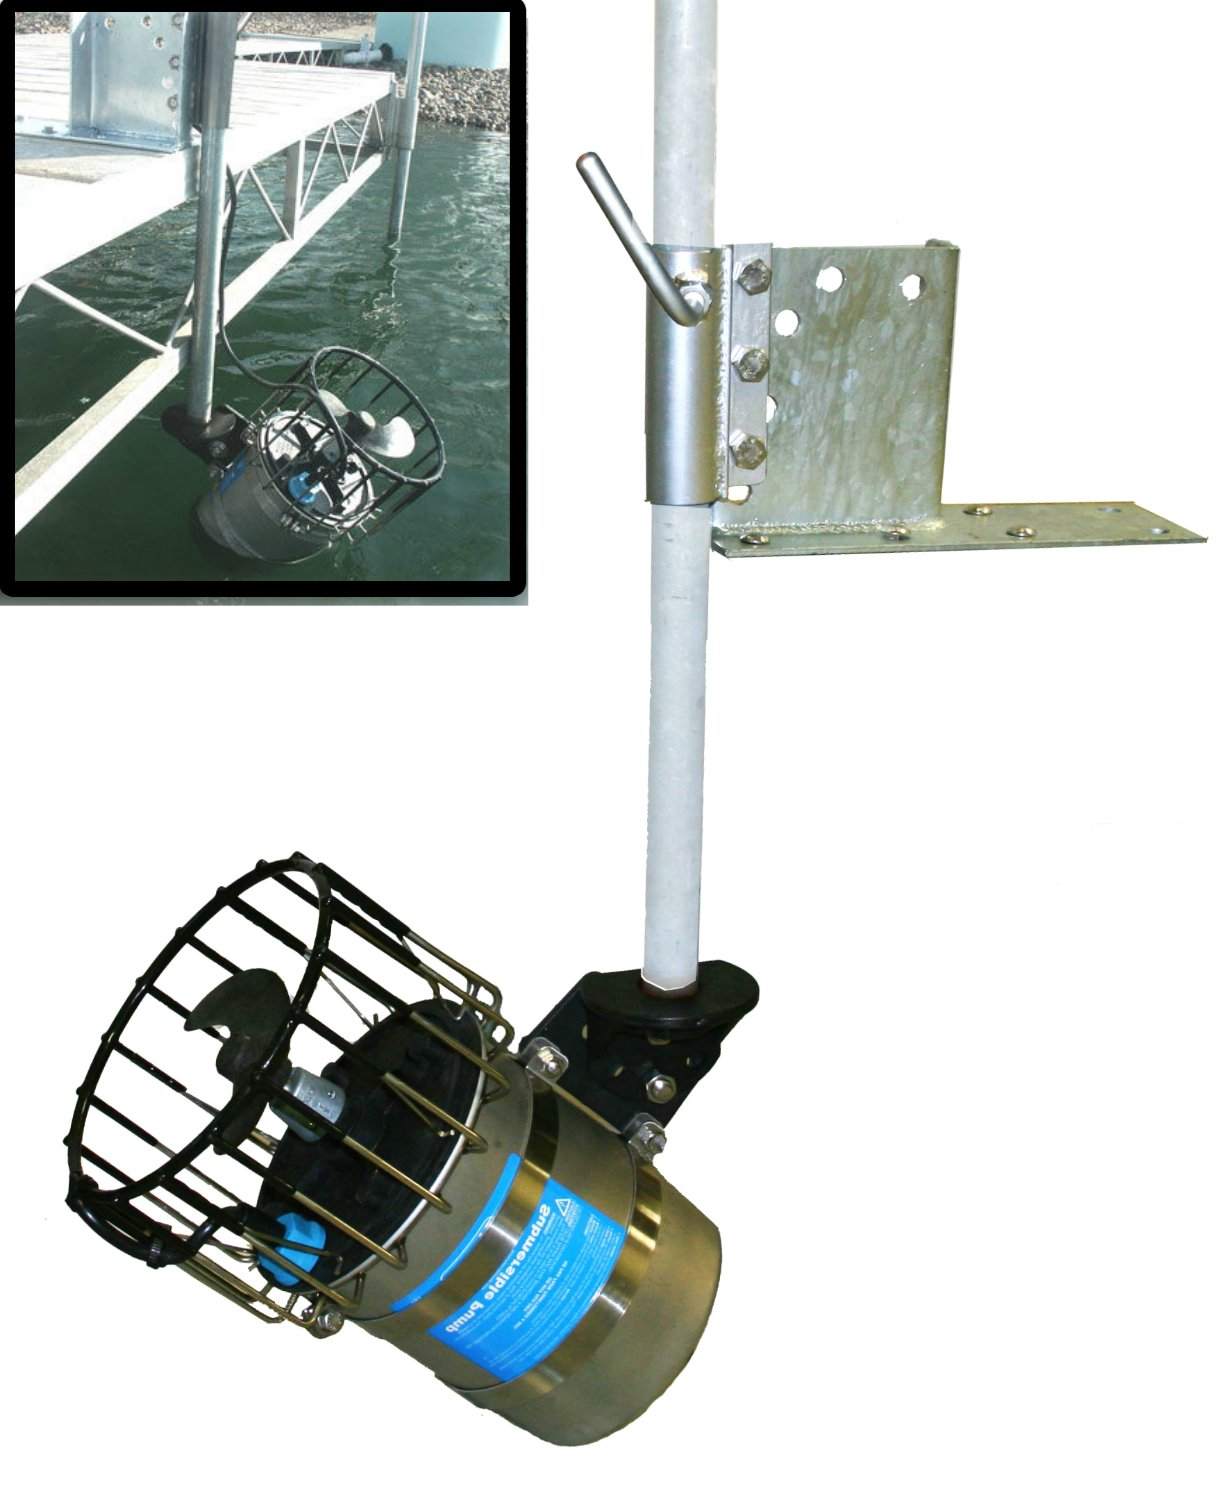 1/2 HP De-icer with Universal Dock & Pier Mount for Winter Lake or Pond Deicing (w/ 25ft cord)